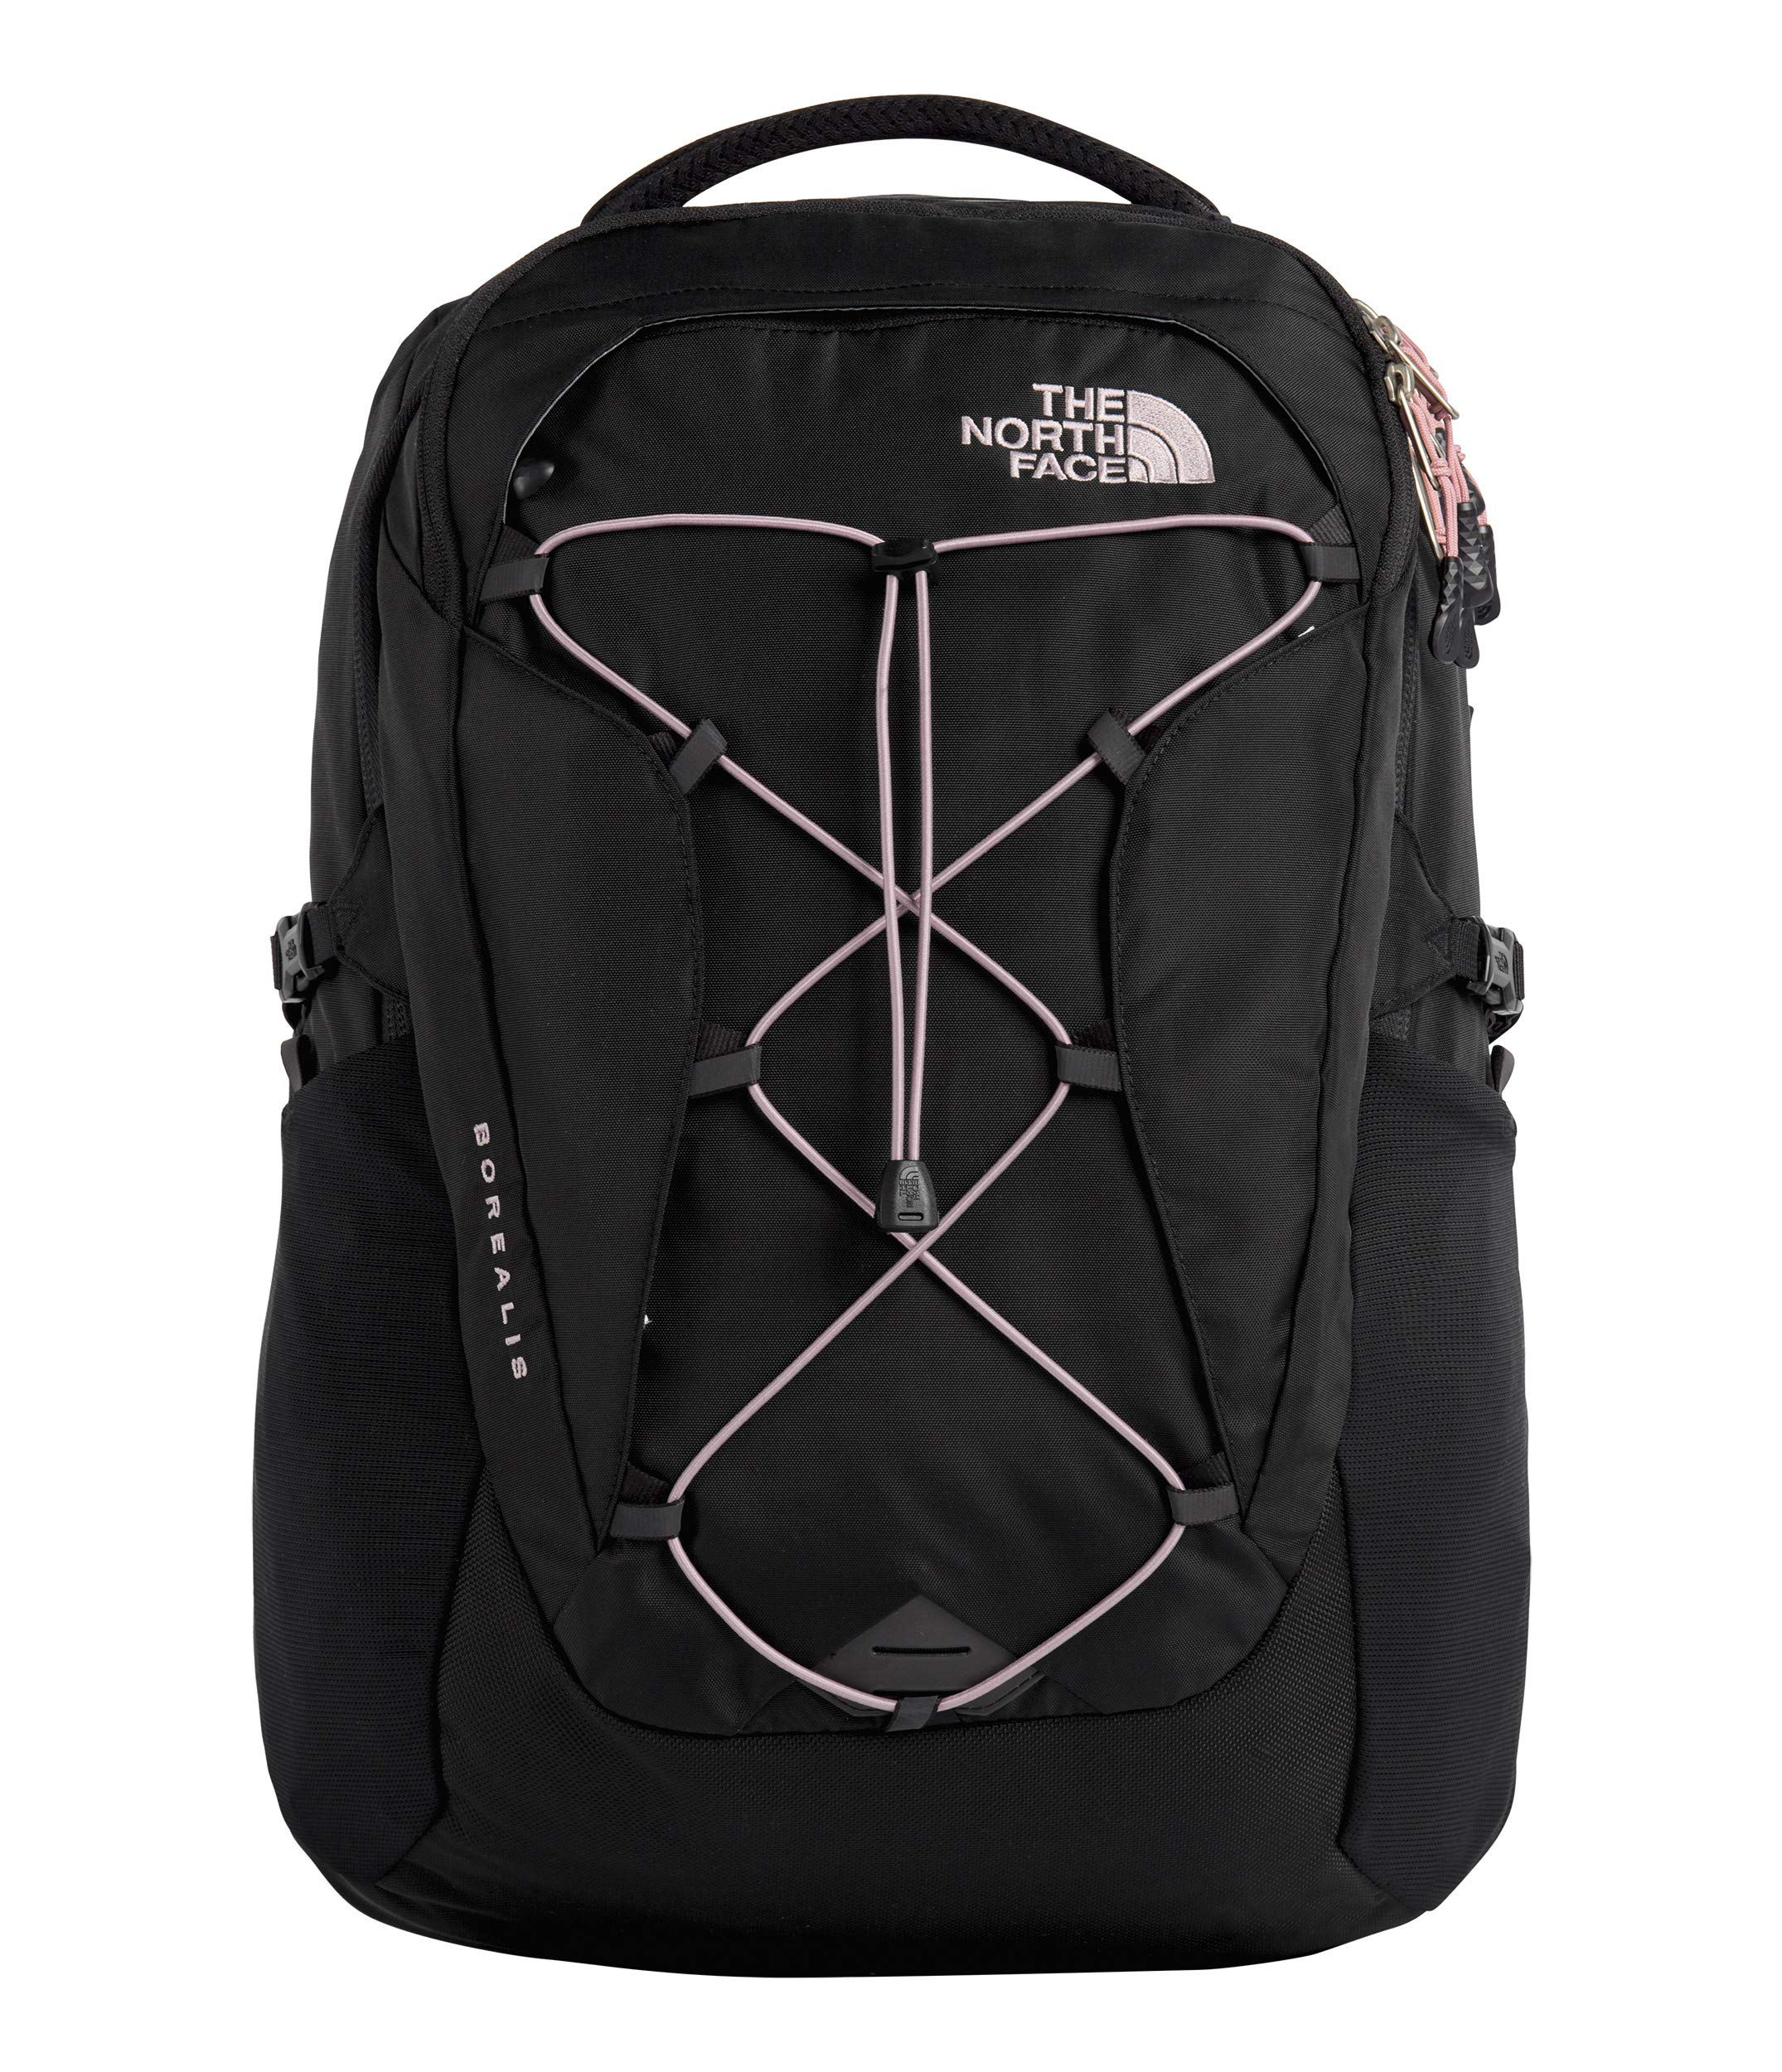 The North Face Women's Borealis Backpack, Tnf Black/Ashen Purple by The North Face